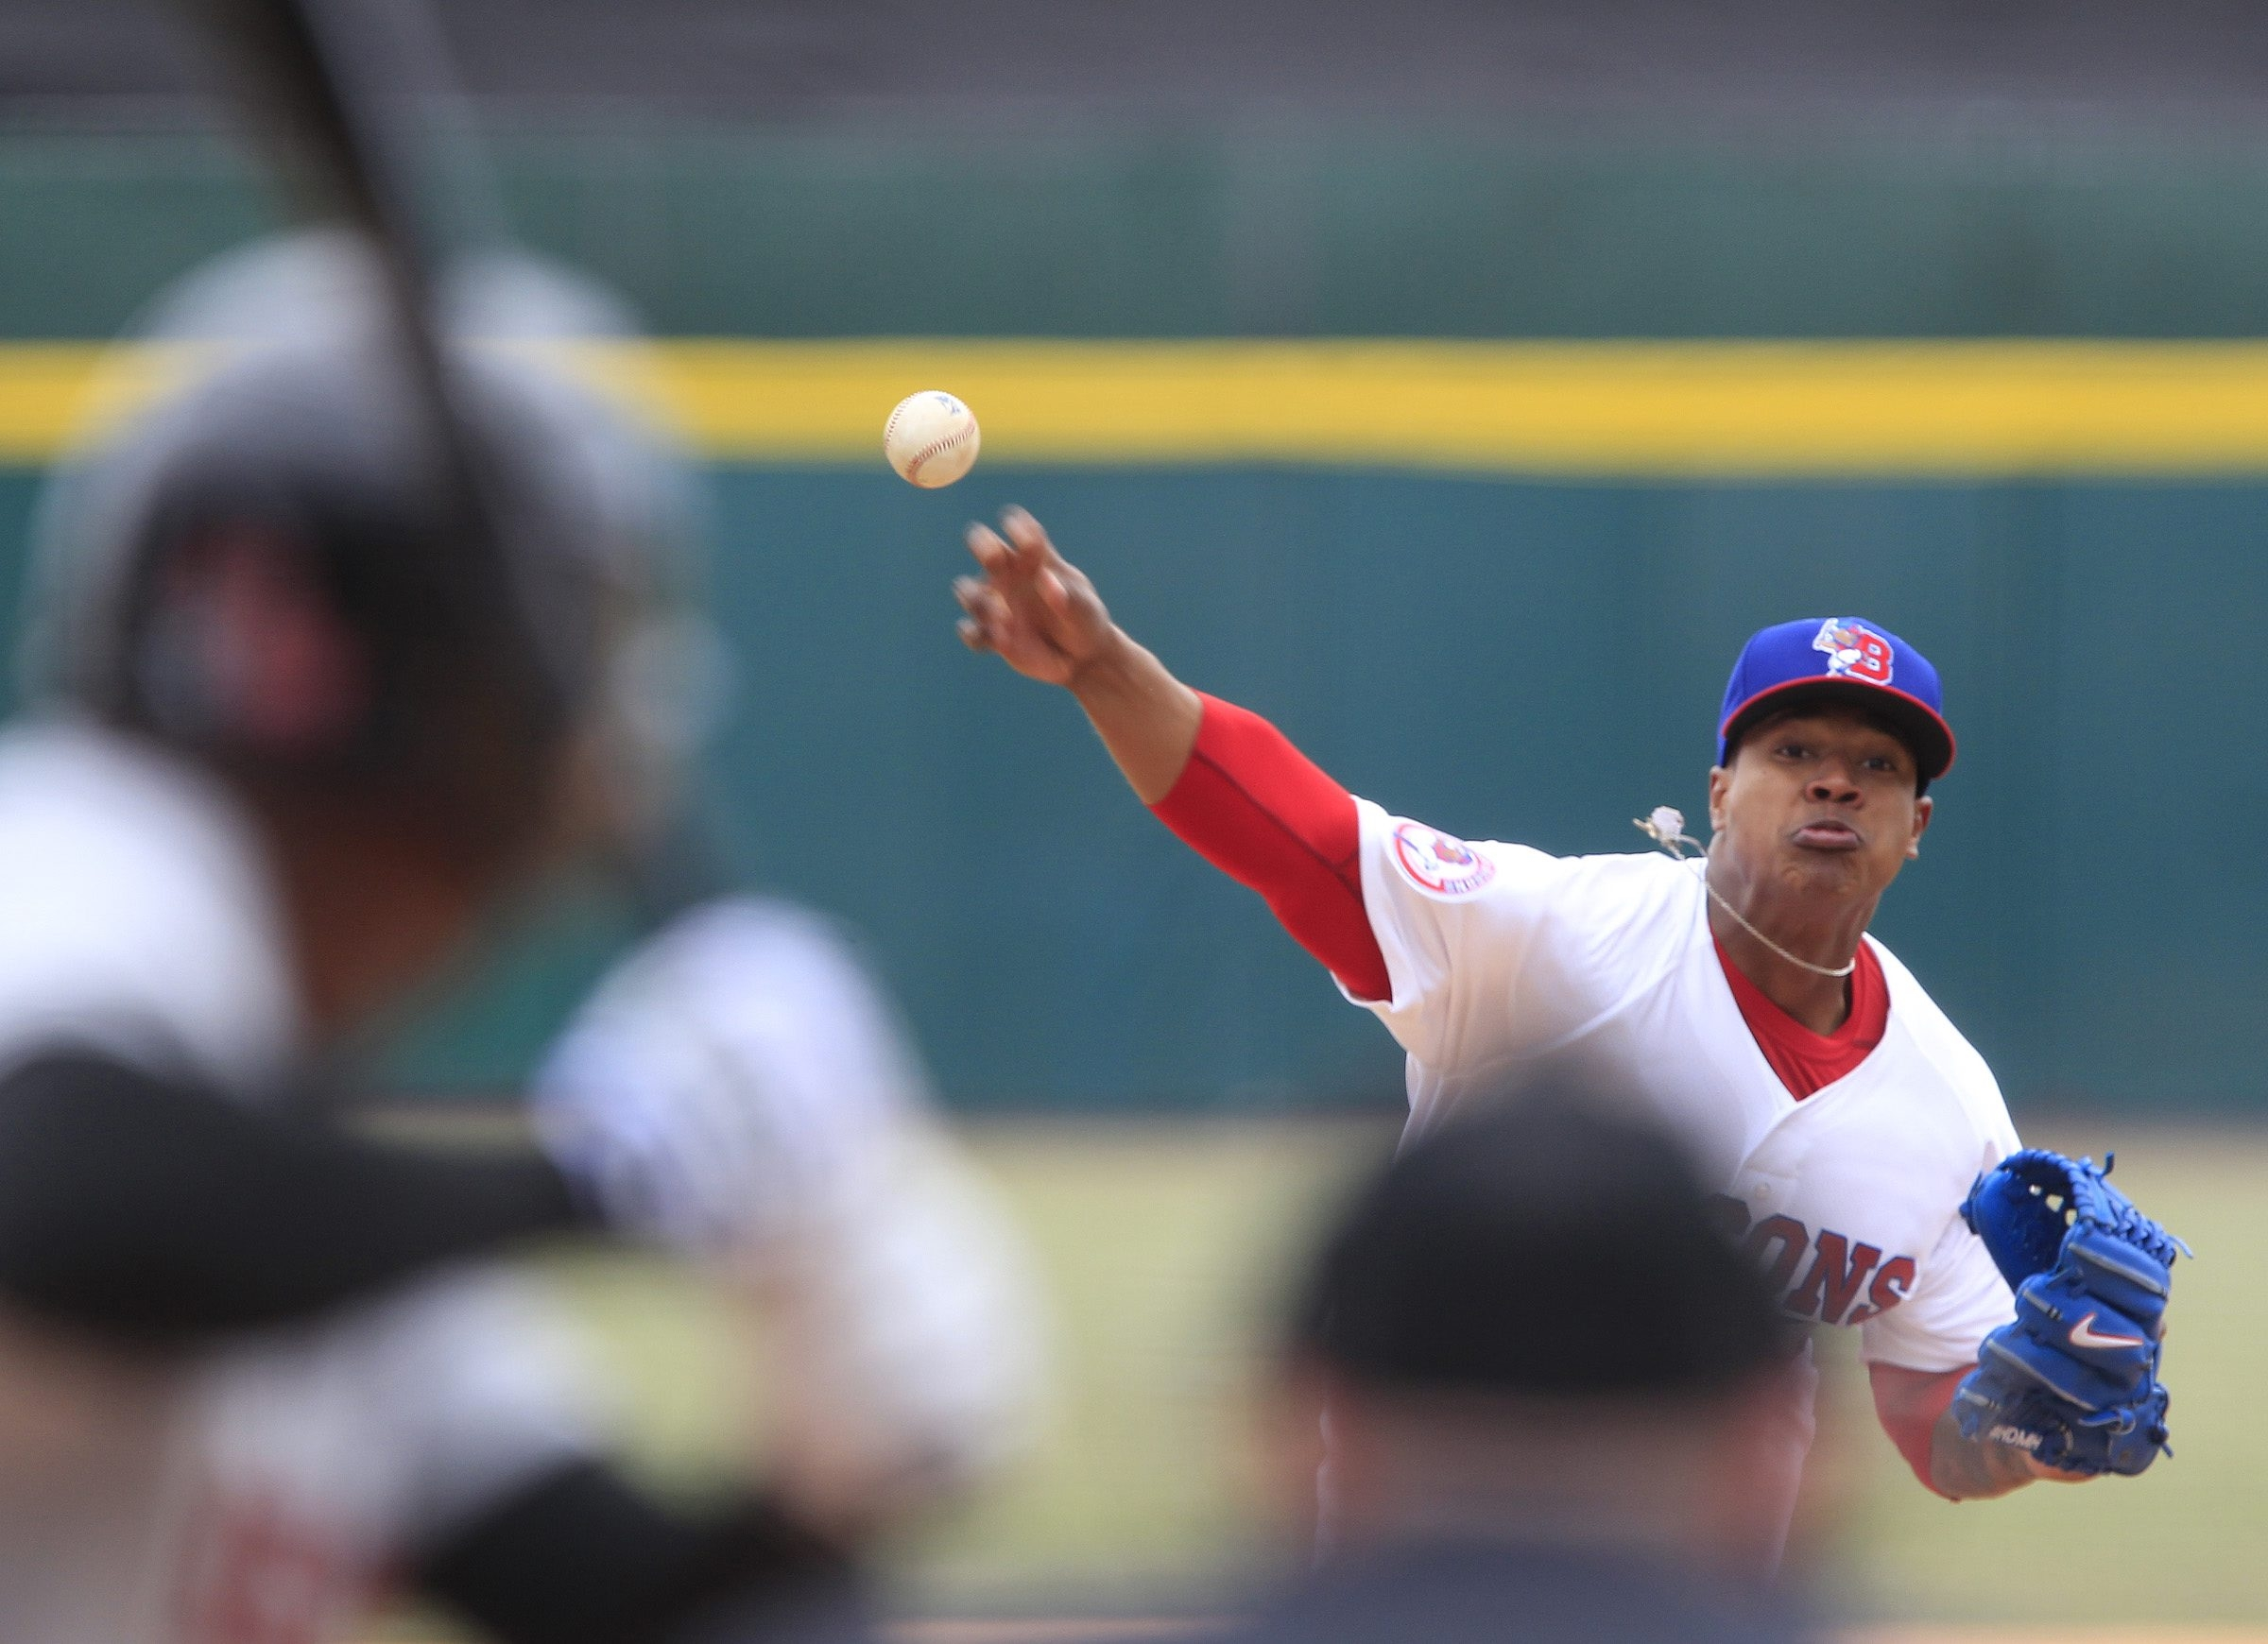 Buffalo Bison pitcher Marcus Stroman delivers a first inning pitch against the Rochester Red Wings during opening day at Coca-Cola Field on, Thursday, April 3, 2014.  {Photo by Harry Scull Jr. / Buffalo News}